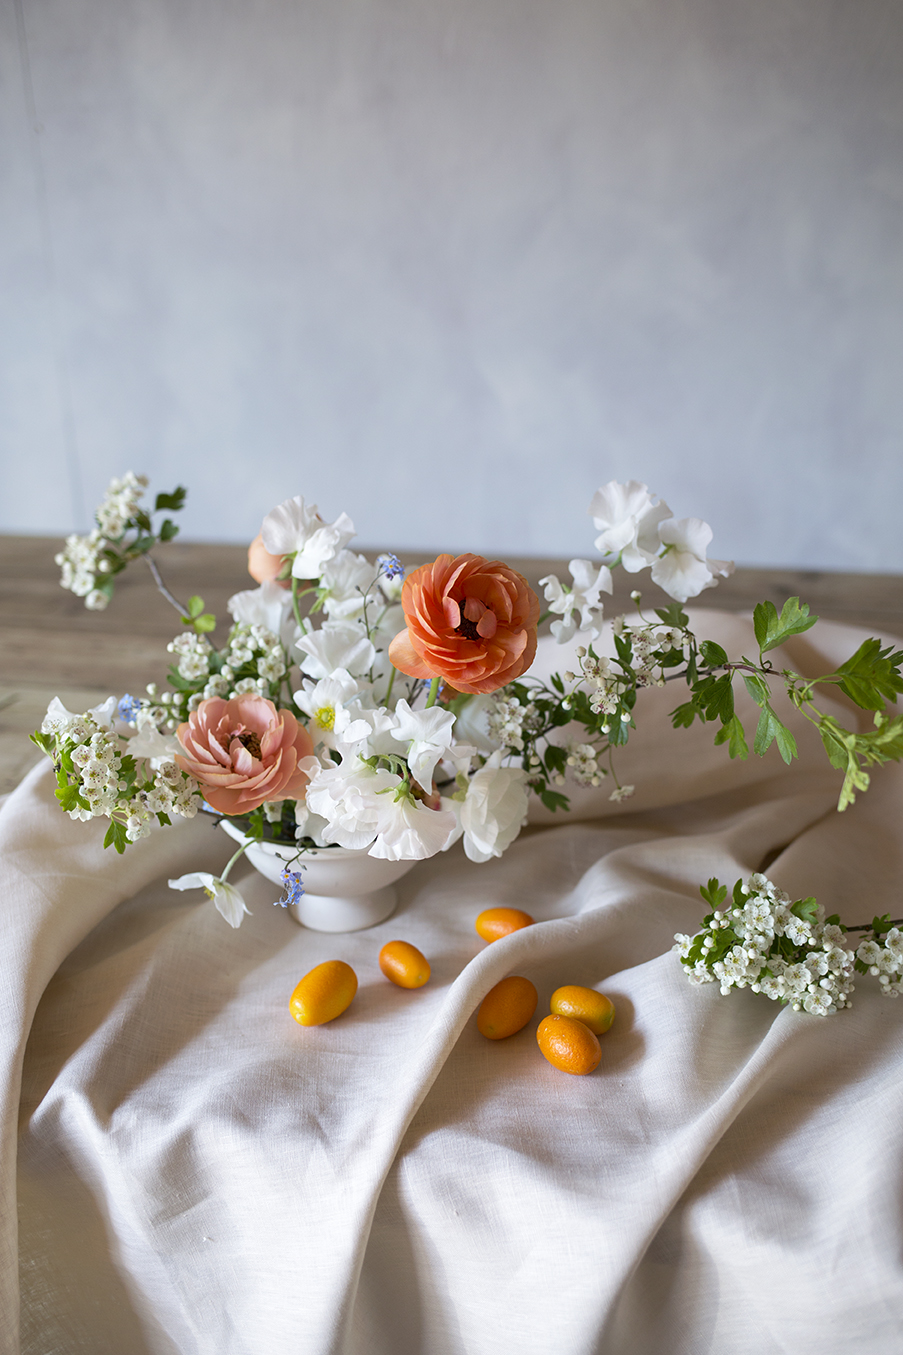 A sweet bowl of hawthorn, sweet peas and apricot ranunculus from our poly tunnel. With indoor-grown kumquats.